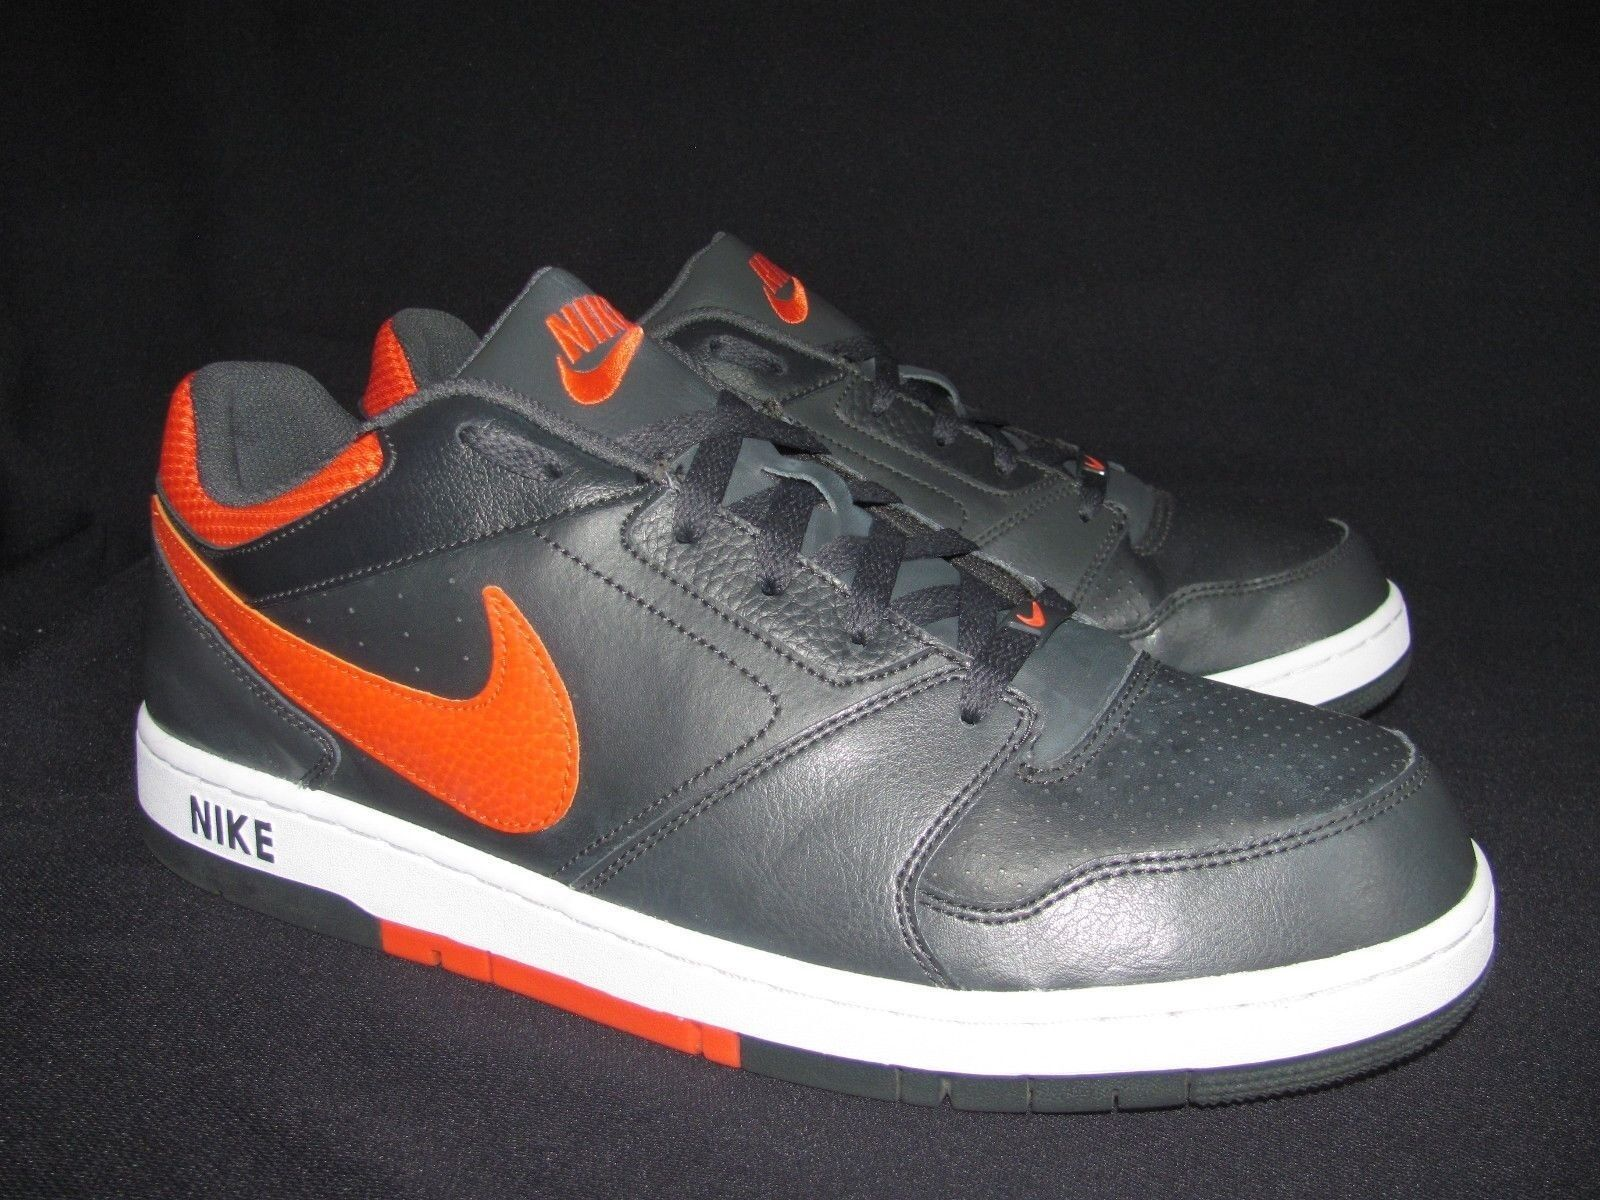 Nike Prestige IV Low  488428 081  Red Charcoal Gray Sneaker Shoes US 13